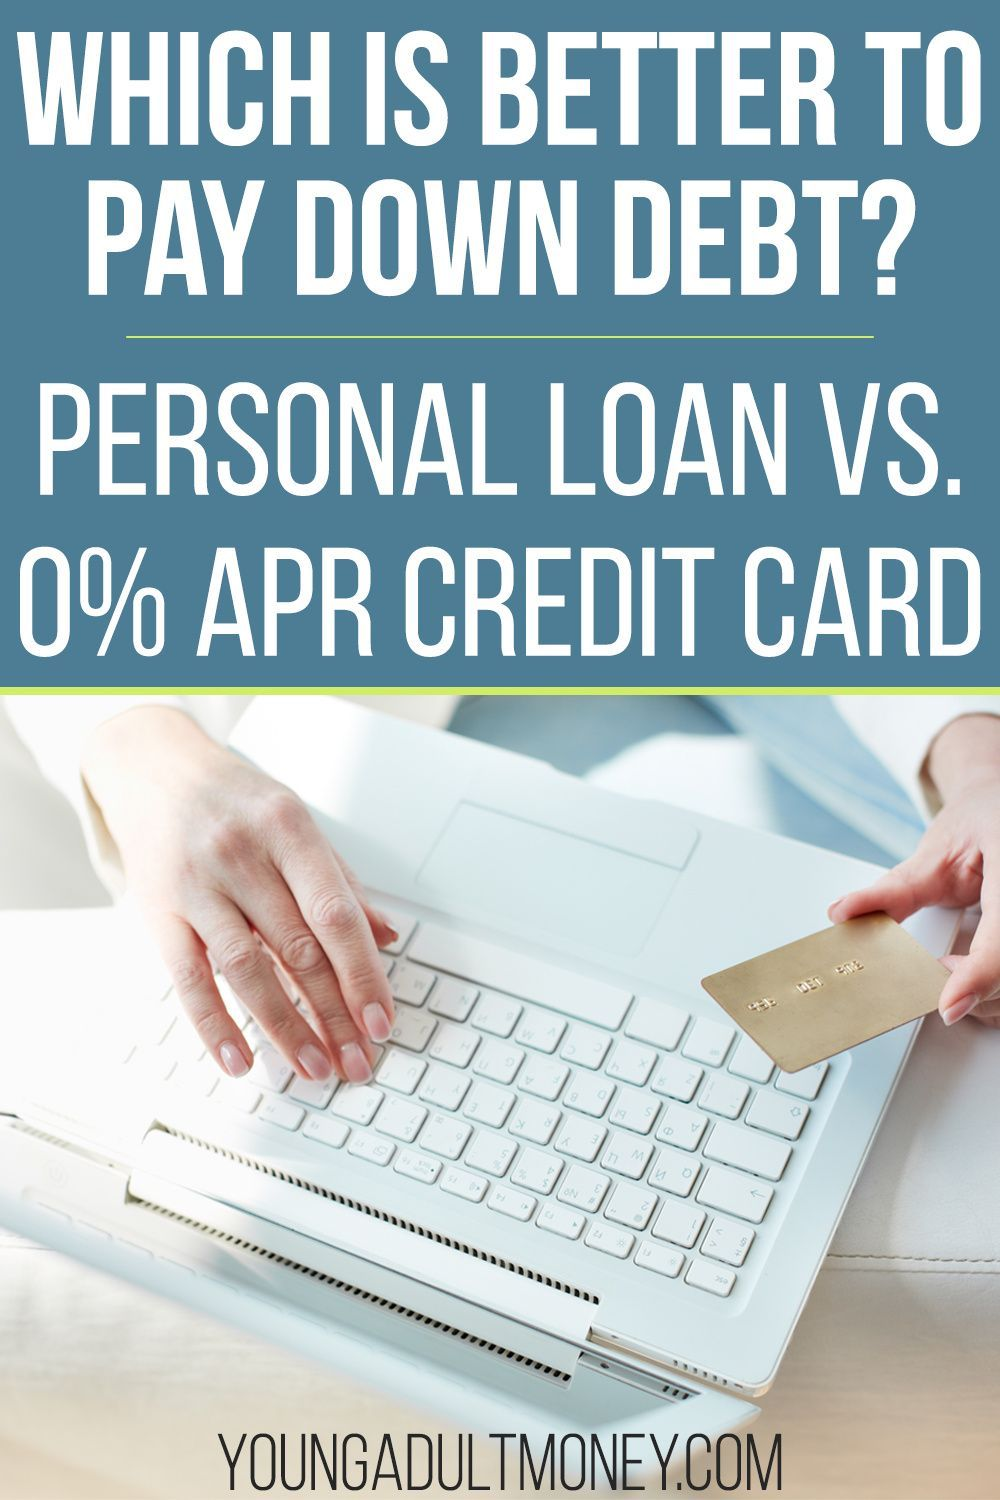 Personal Loan Vs 0 Apr Credit Card In 2020 Personal Loans Credit Card Personal Finance Bloggers